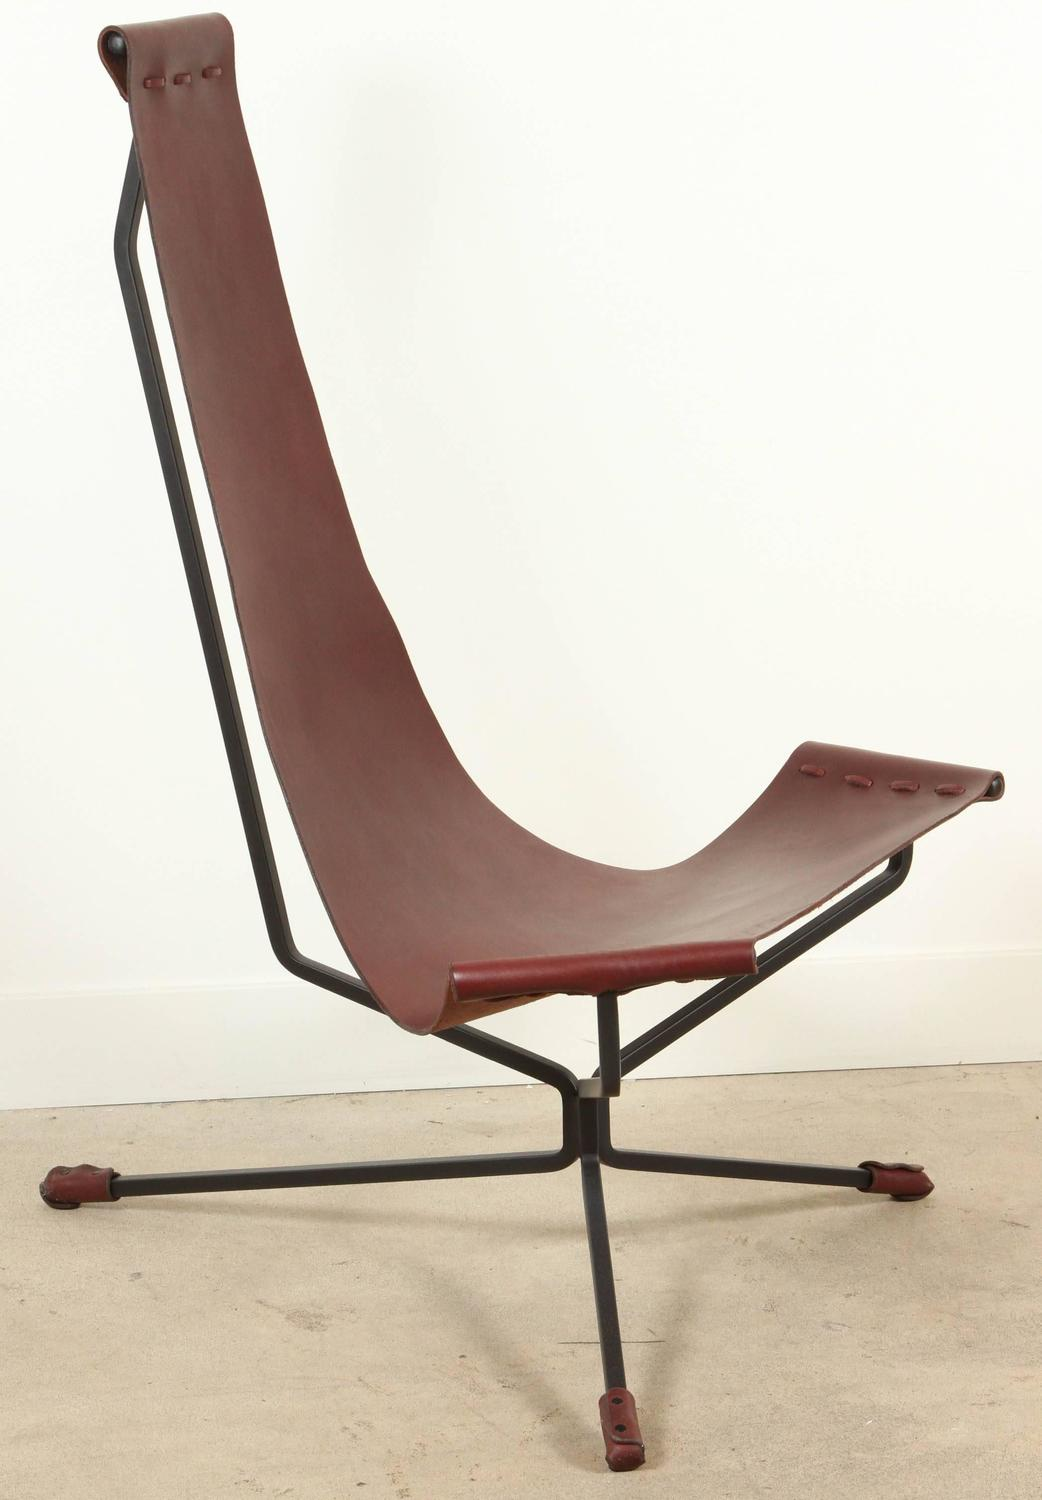 Wenger Chairs Lotus Chair By Daniel Wenger For Sale At 1stdibs